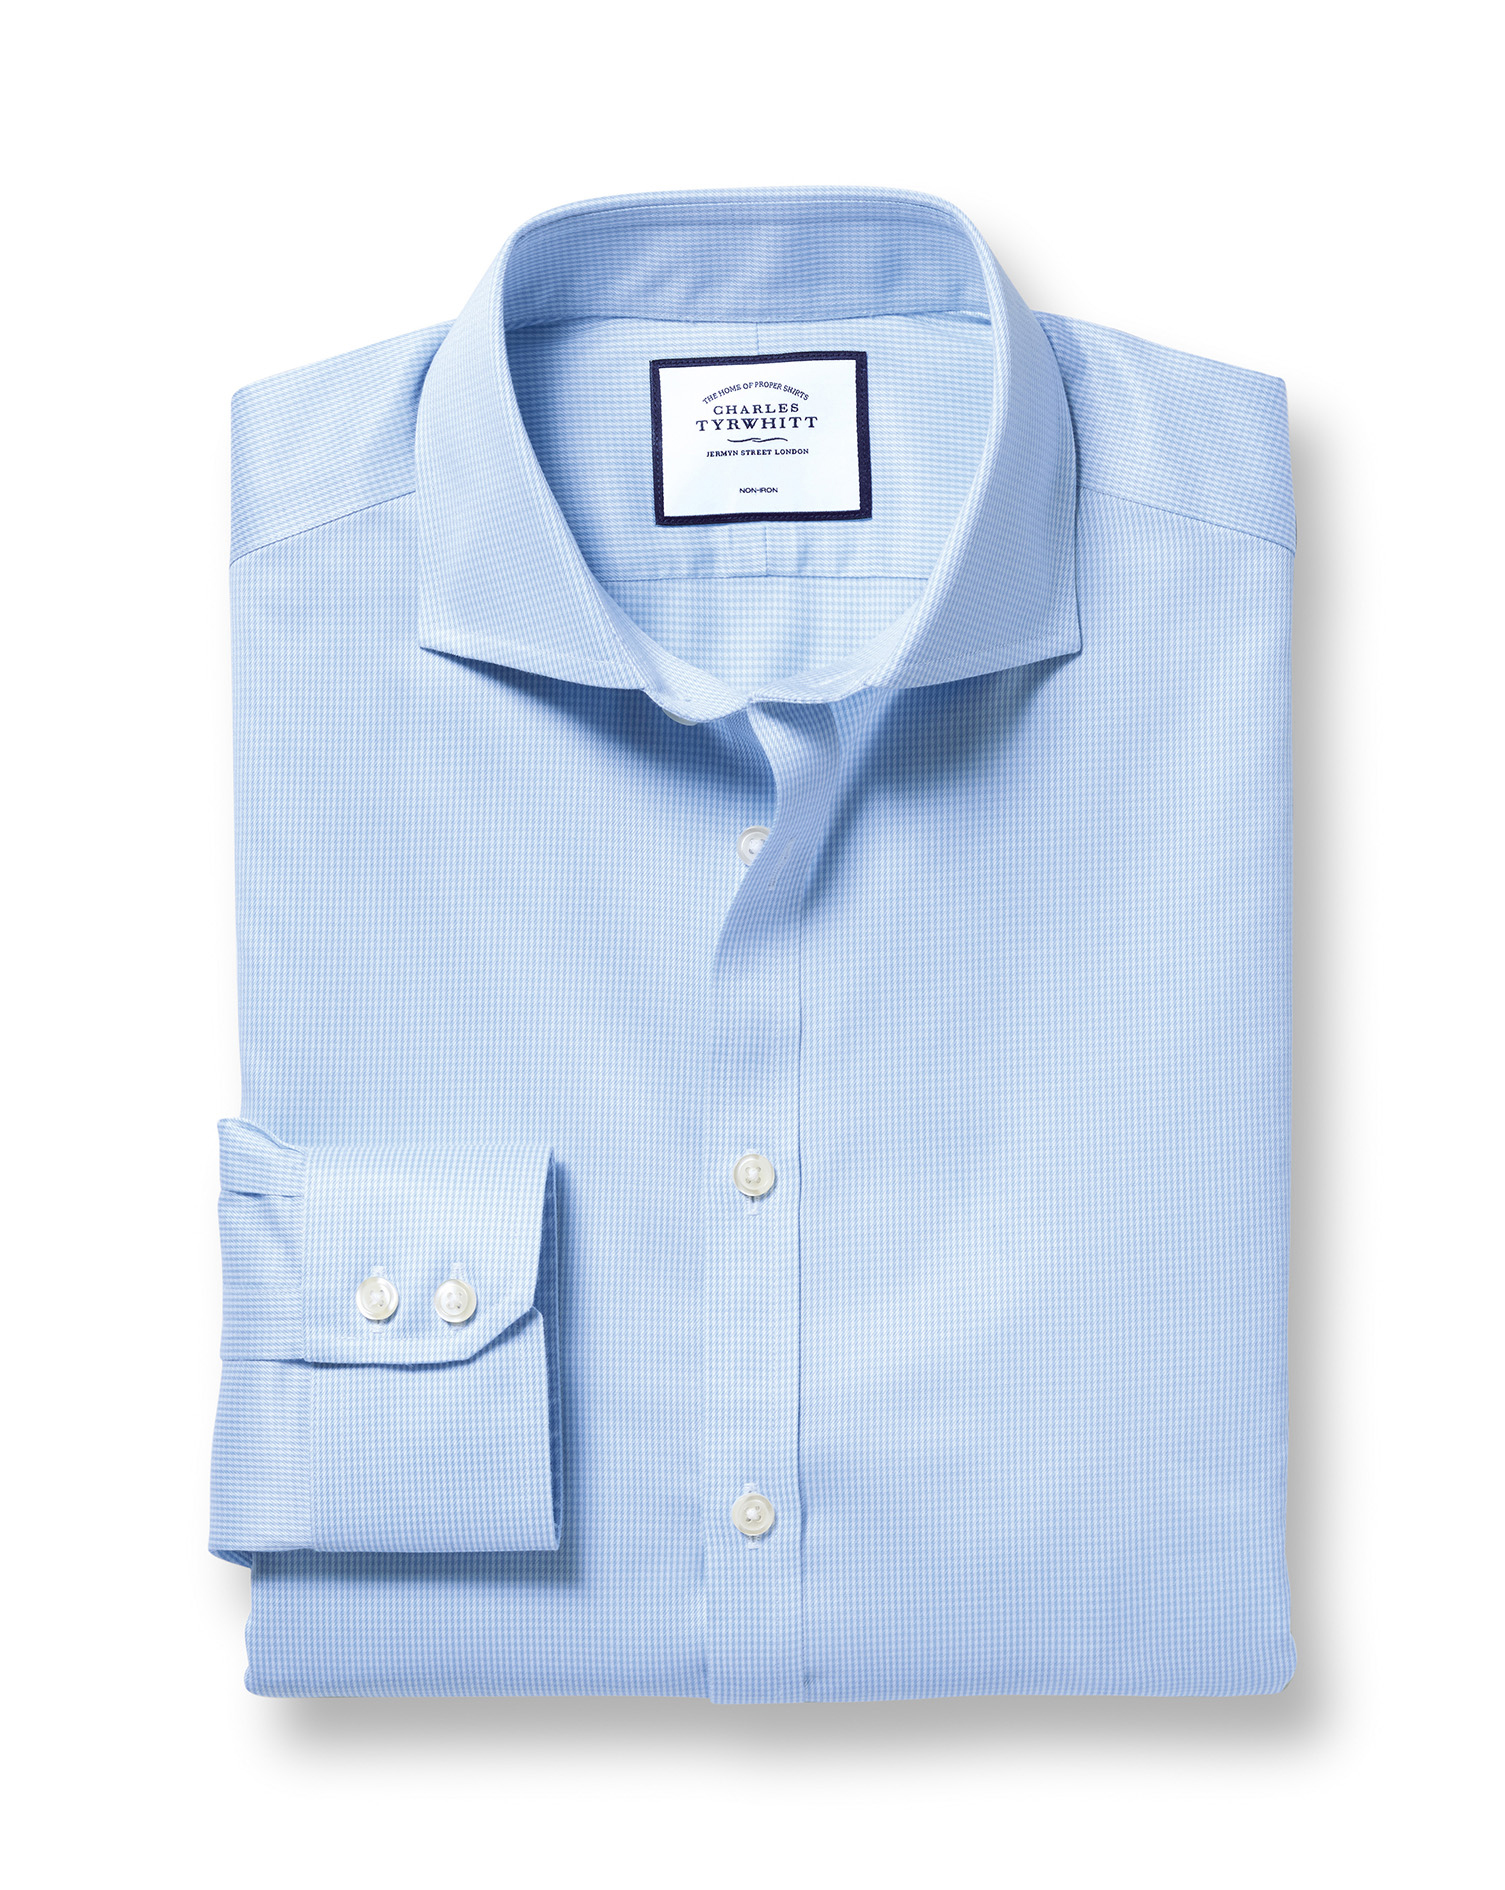 Extra Slim Fit Cutaway Non-Iron Puppytooth Sky Blue Cotton Formal Shirt Double Cuff Size 17/35 by Ch